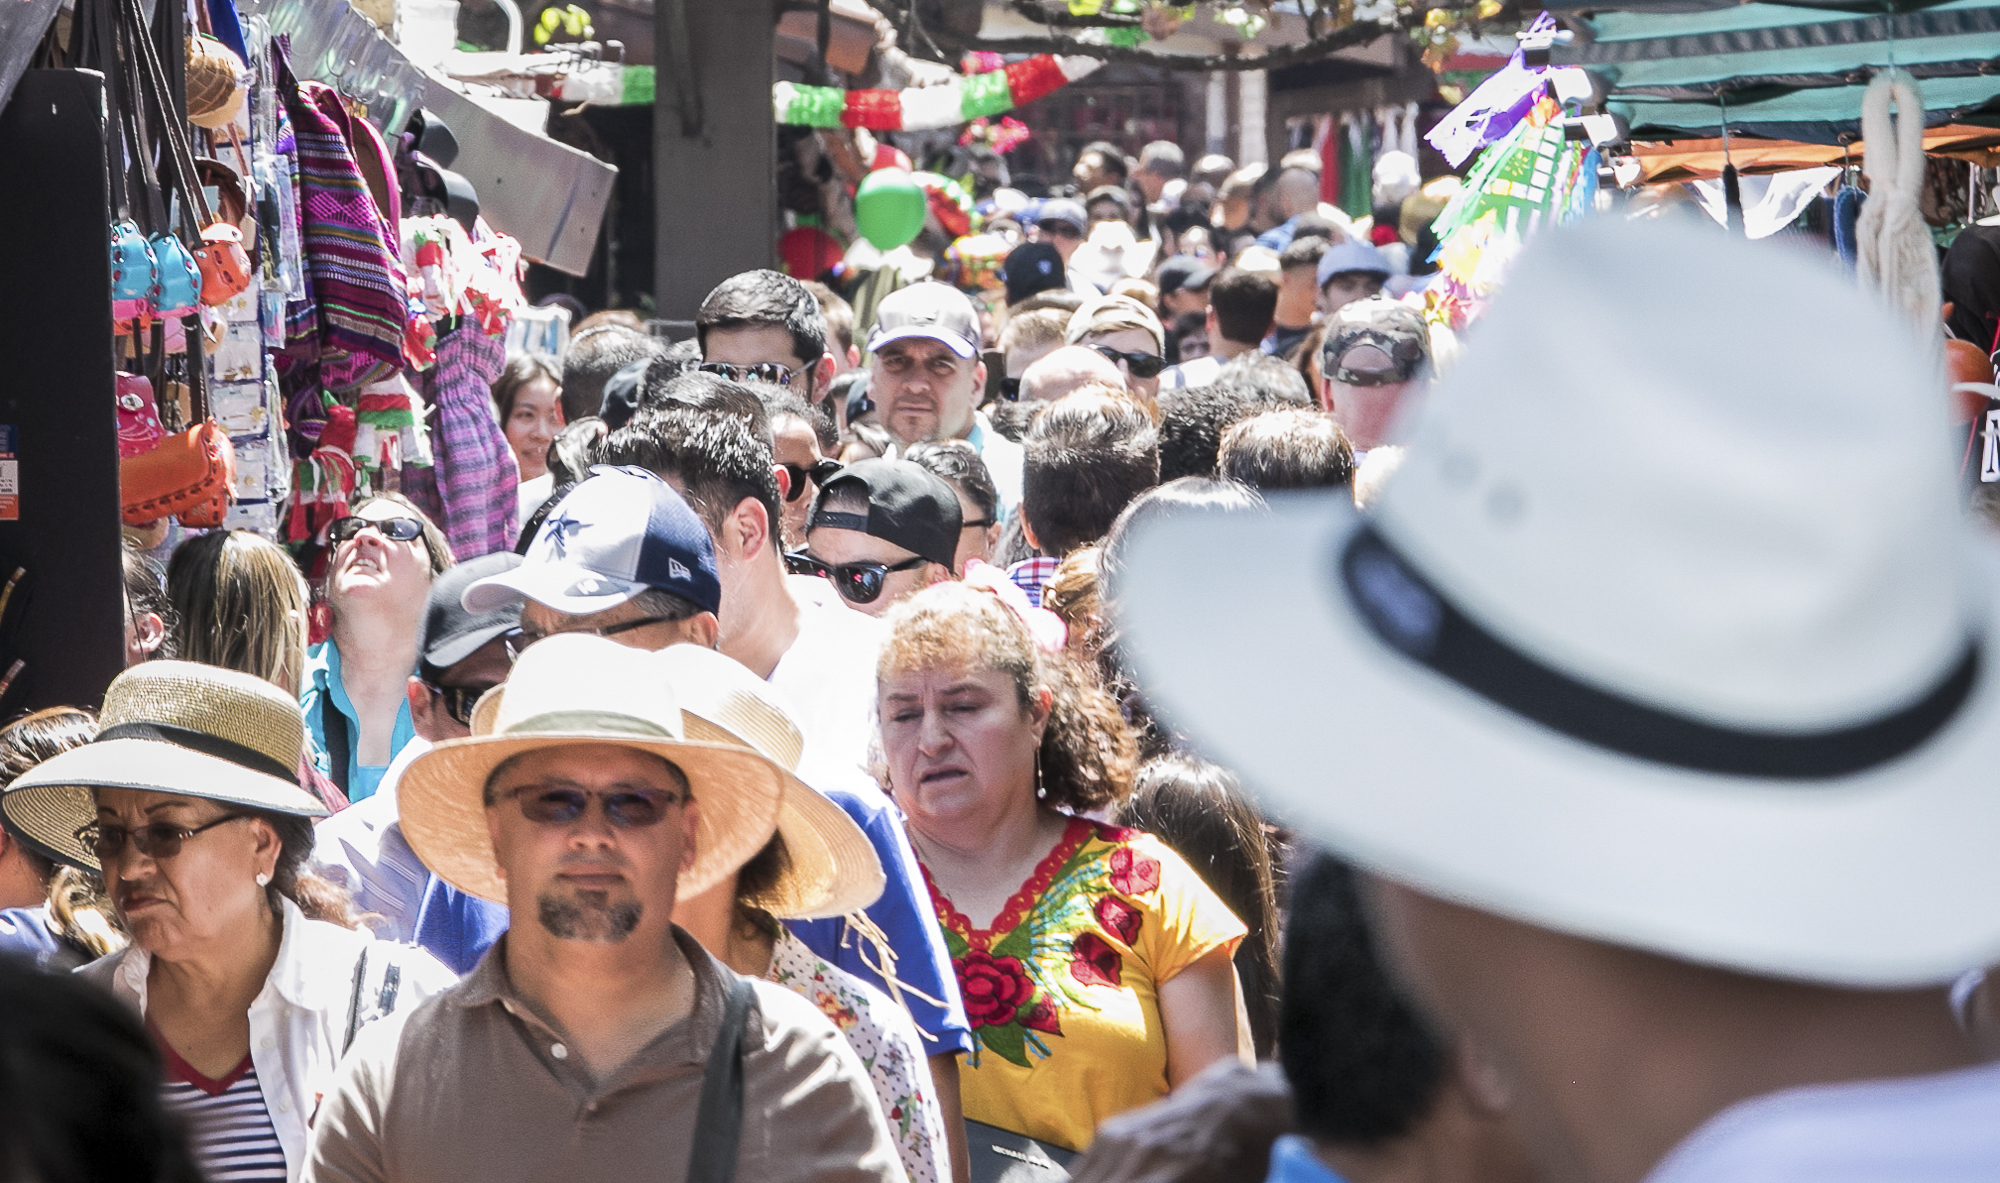 There were multiple shops set up filled with tradiotional mexican prodcuts on sale for the people celebrating  Cinco De Mayo which was held at El Pueblo de Los Angeles Historic Monument on  Olvera Street on May 5th, 2018.(Downtown, Los Angeles, California, Saturday, May 5th, 2018.) (Ashutosh Bikram Singh/Corsair Photo)